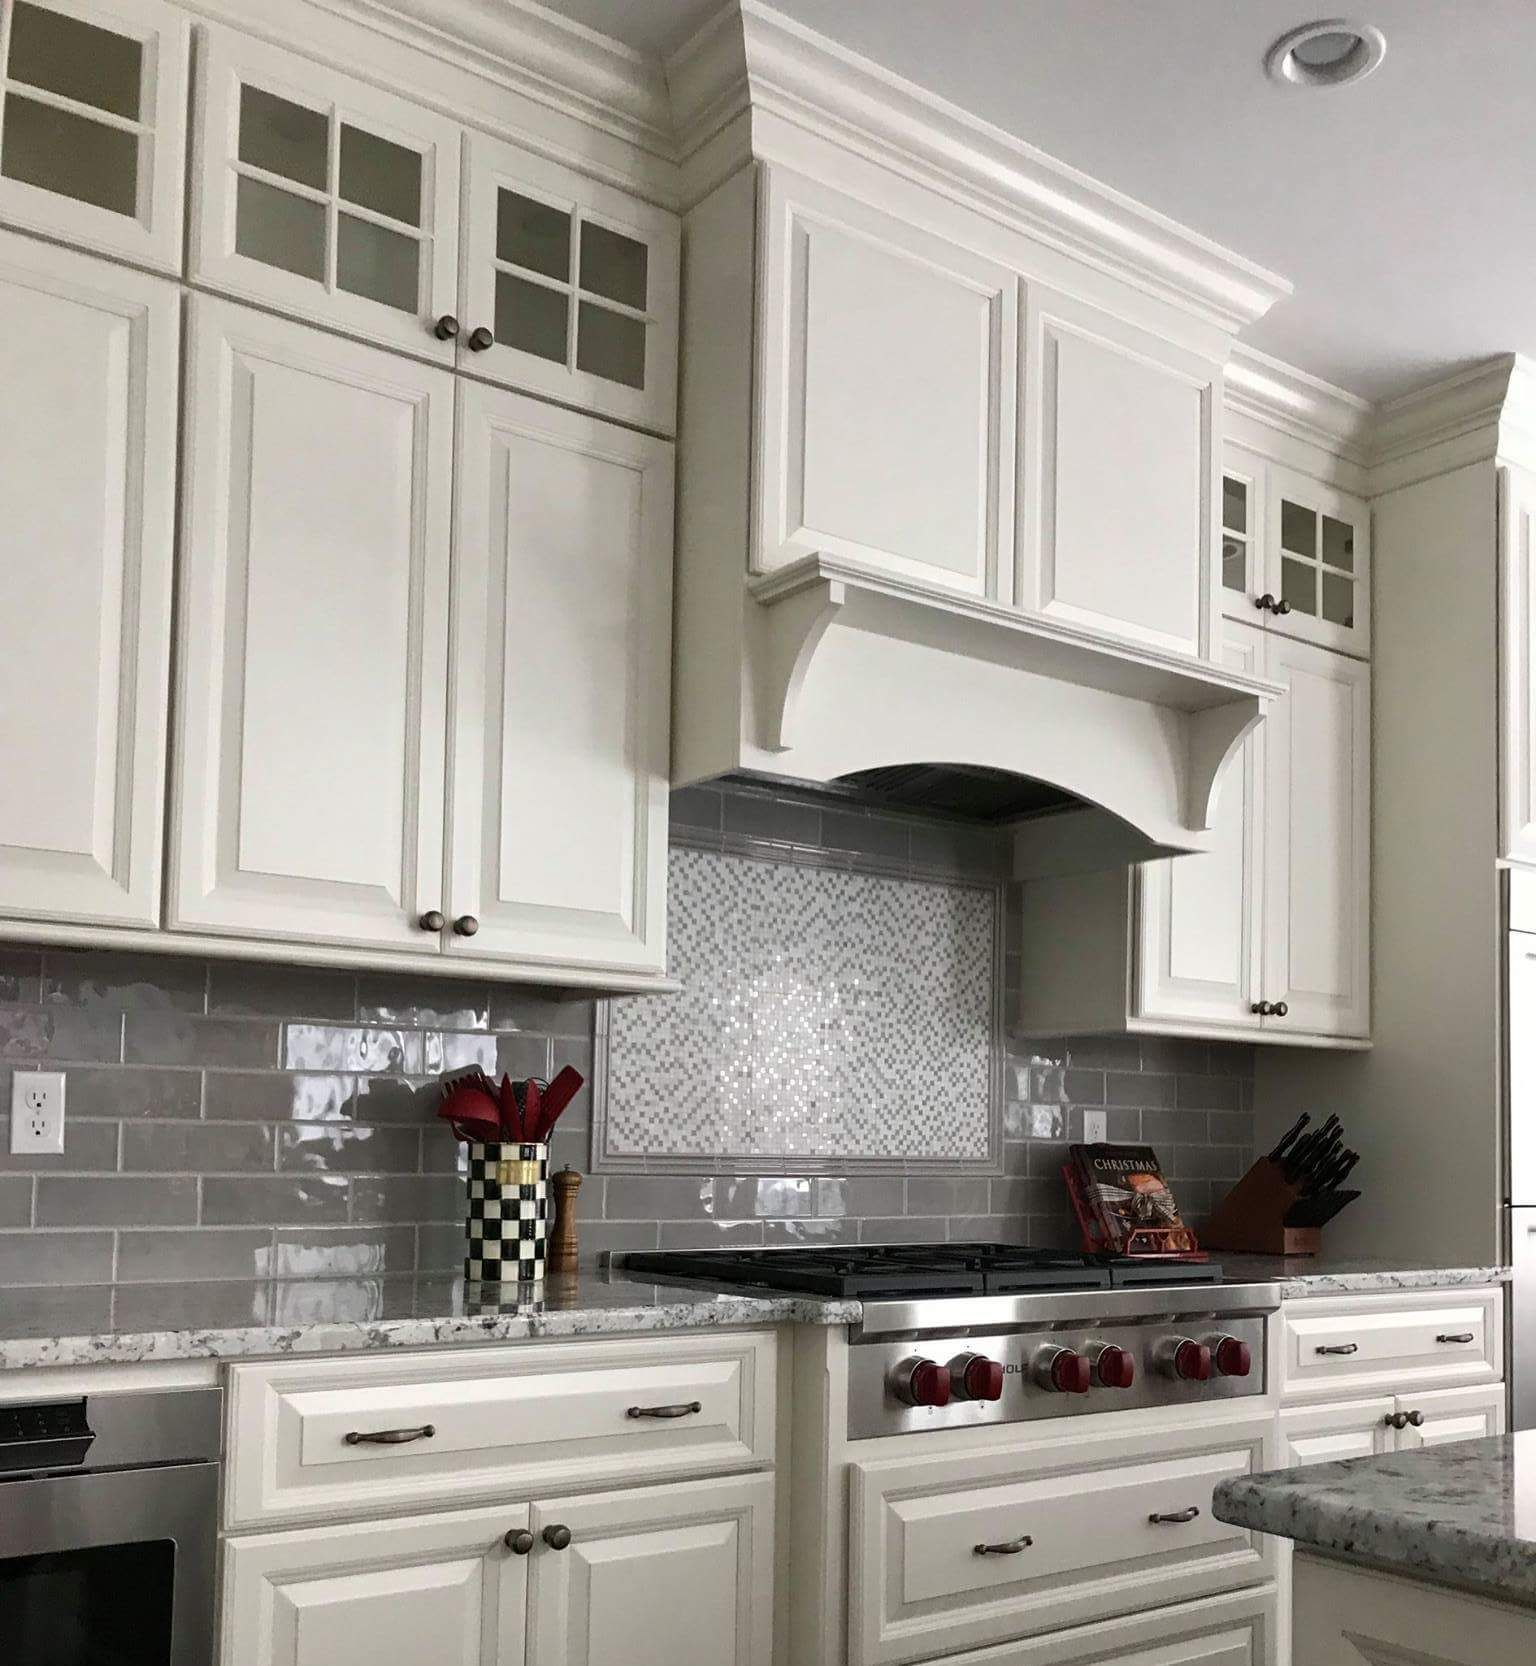 Candlelight Cabinetry Elite Square Full Overlay In Aurora White Designed By Lisa Ellis At Kitchen Advantage In Candlelight Cabinetry Cabinetry Candlelight